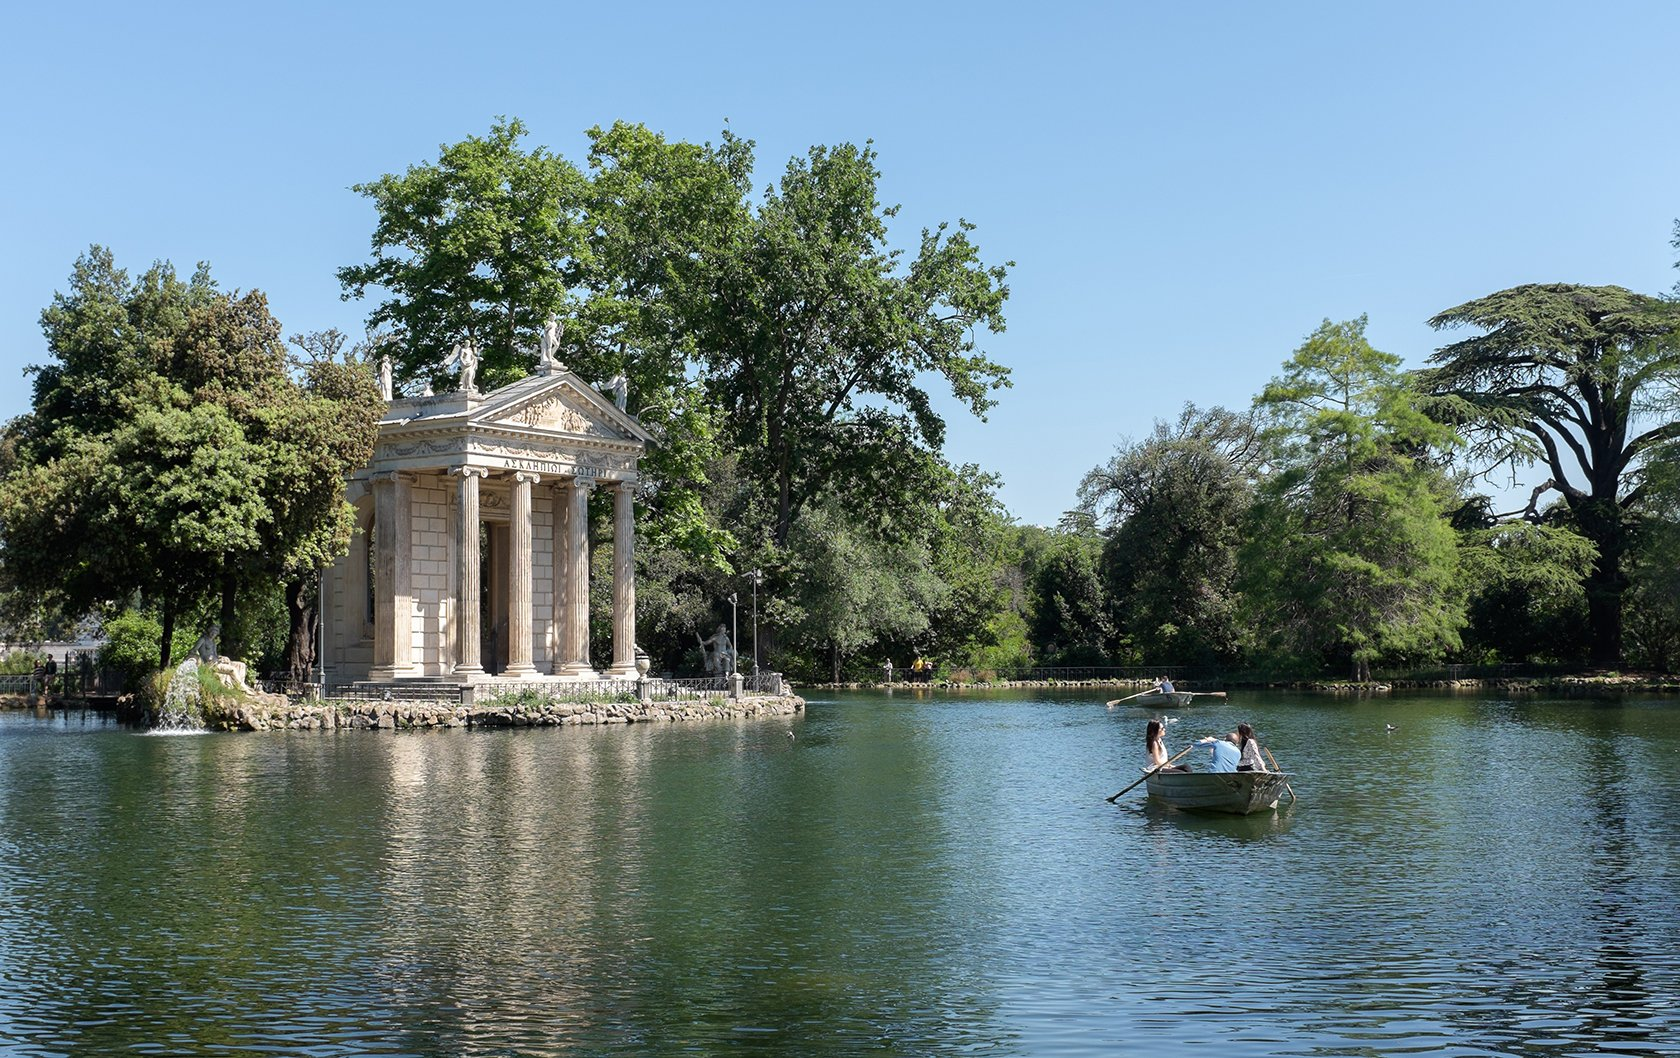 Rome's Most Beautiful Parks and Gardens